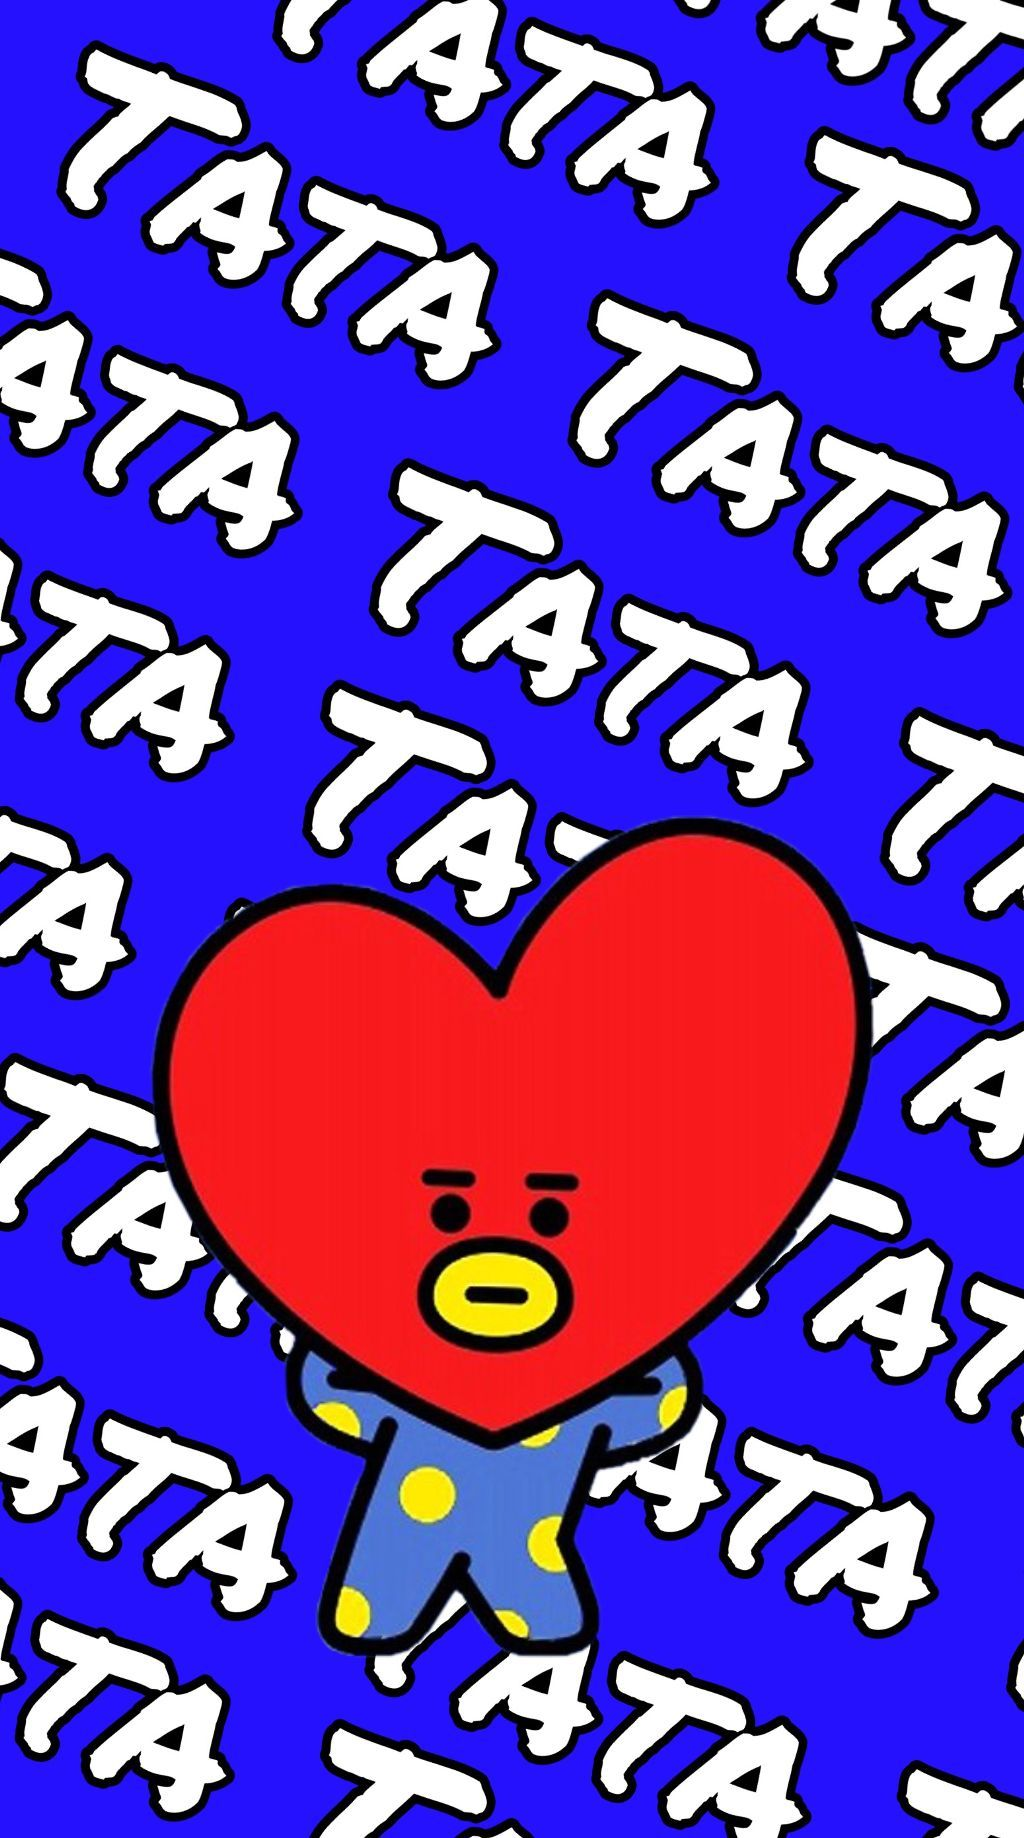 Tata Bt21 Wallpapers Top Free Tata Bt21 Backgrounds